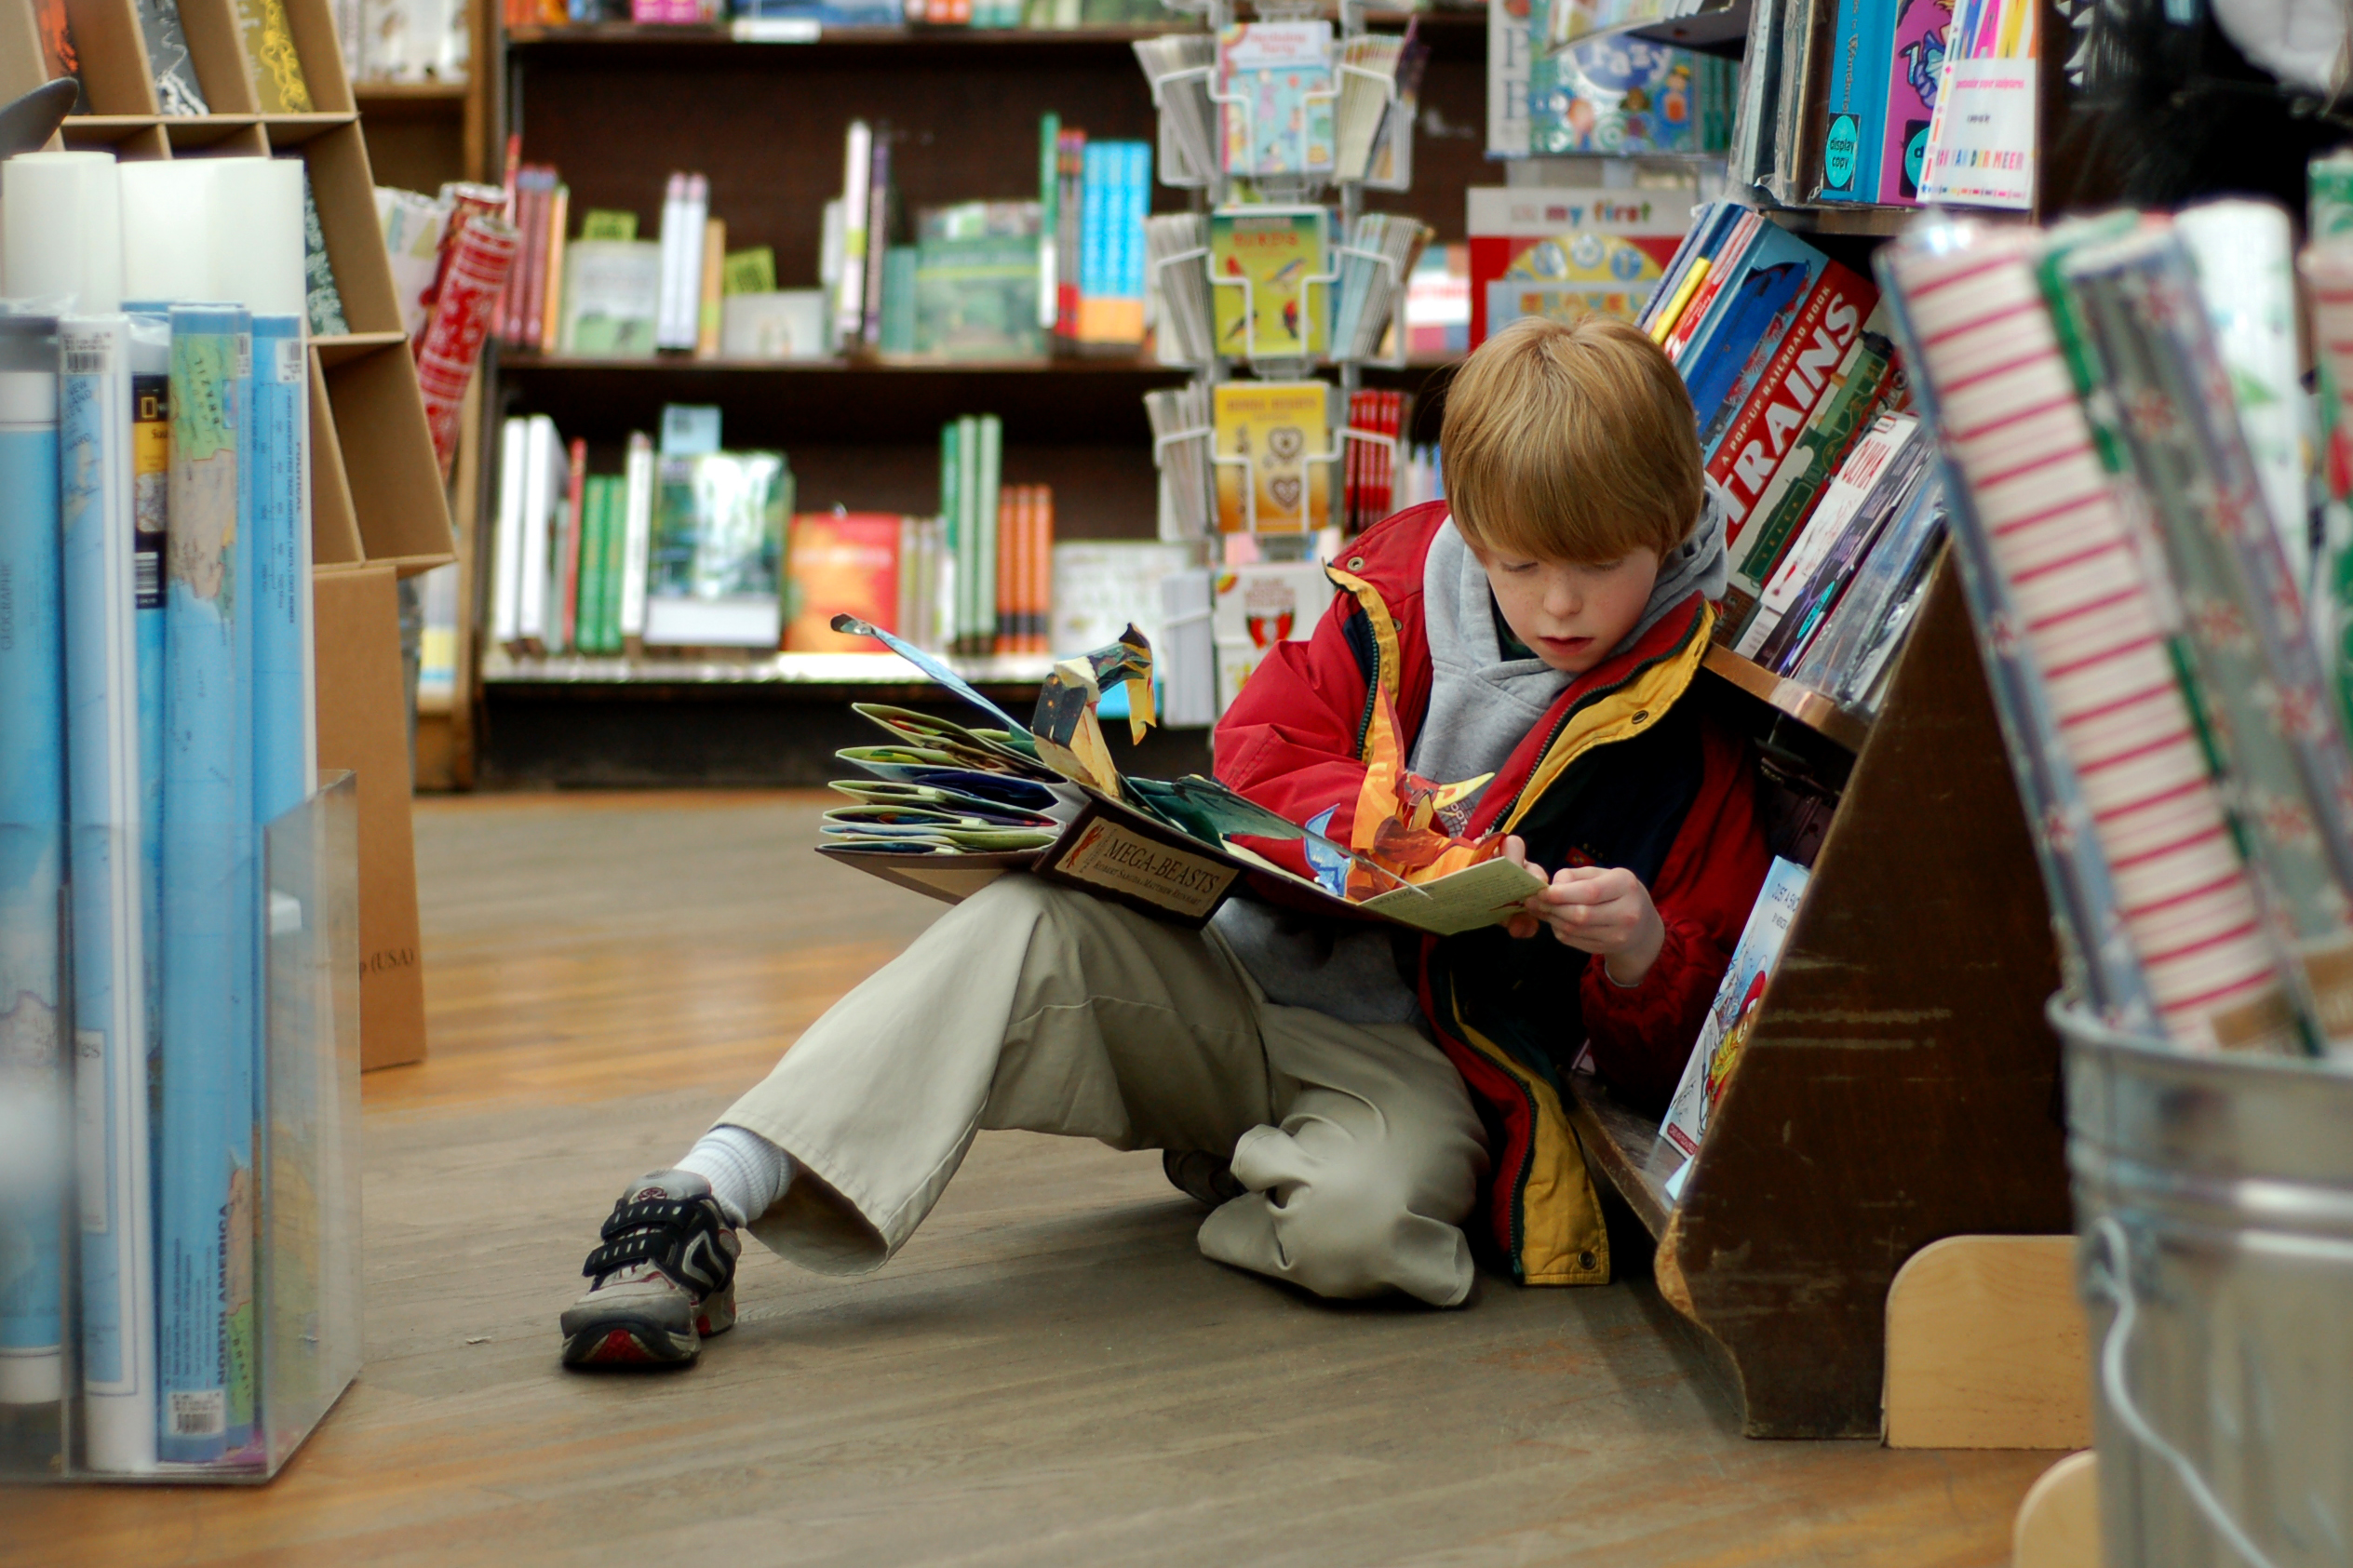 Boy reading book on the floor of a book store.